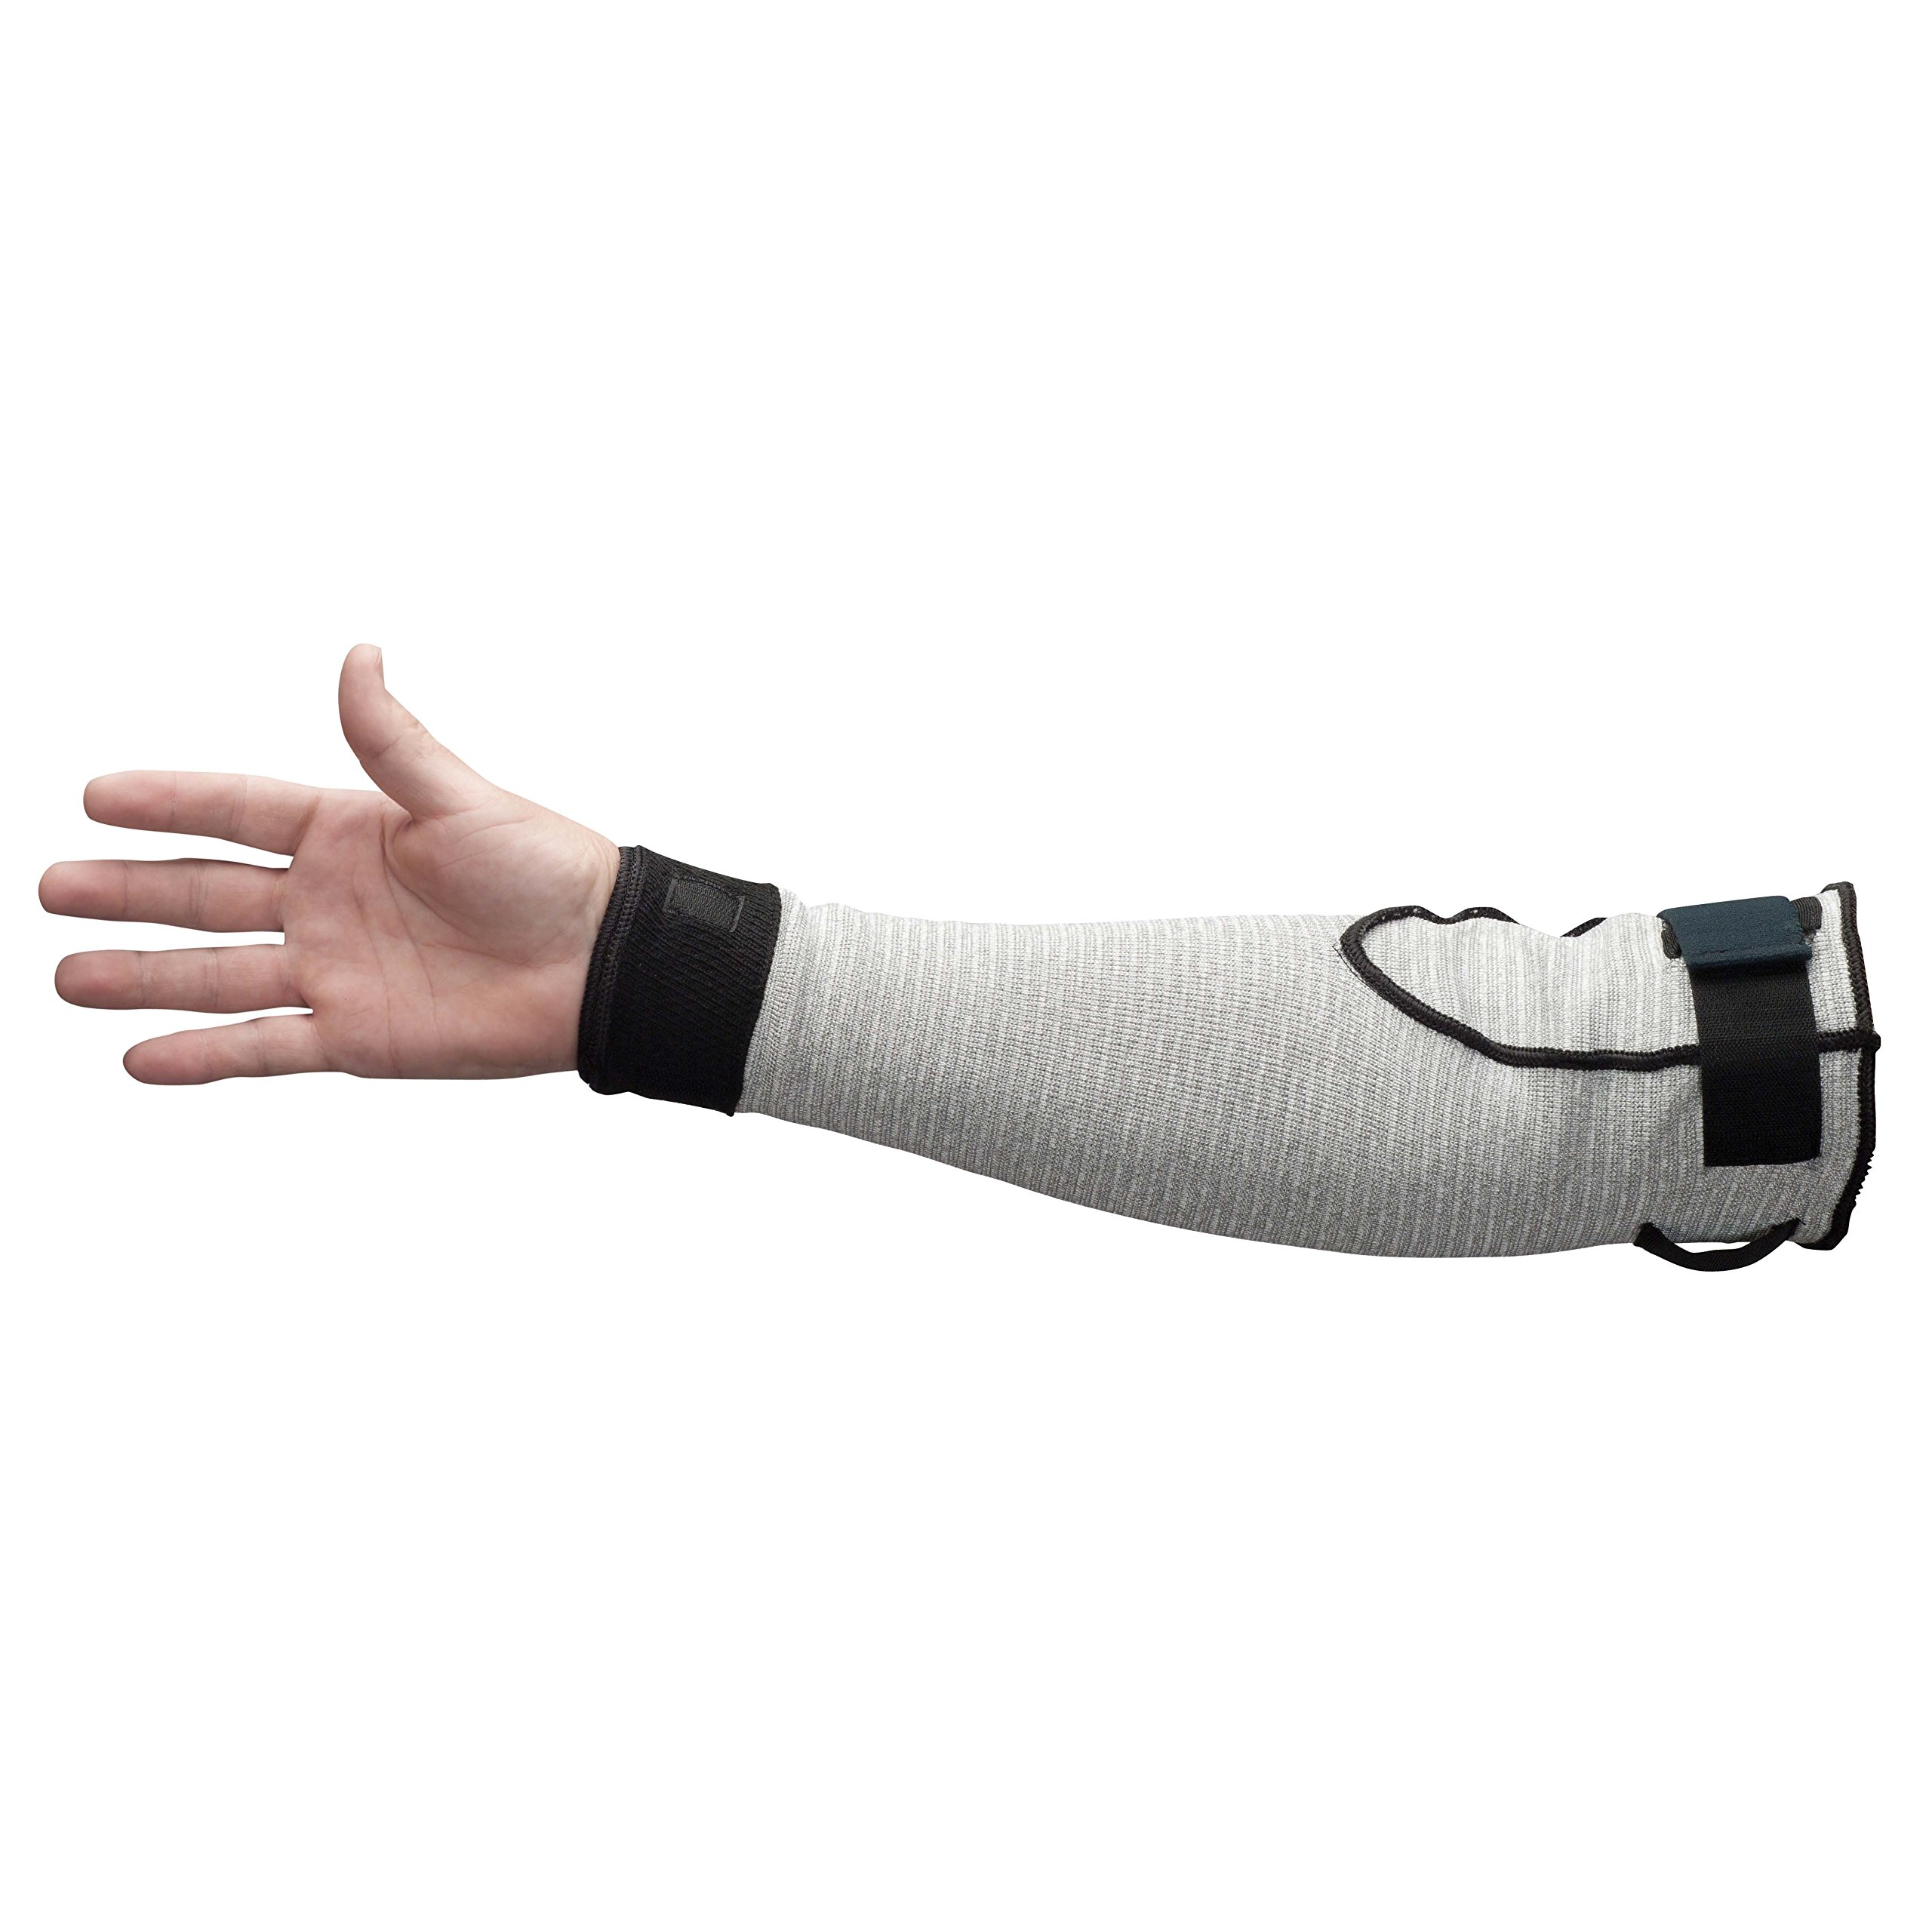 JACKSON SAFETY 90075 G60 Level 5 Cut Resistant Sleeves, 0.5'' Height, 11'' Length, 5'' Width, High molecular-weight polyethylene (HMPE) engineered yarn, 18'', Marled Gray (Pack of 24) by Jackson Safety (Image #1)